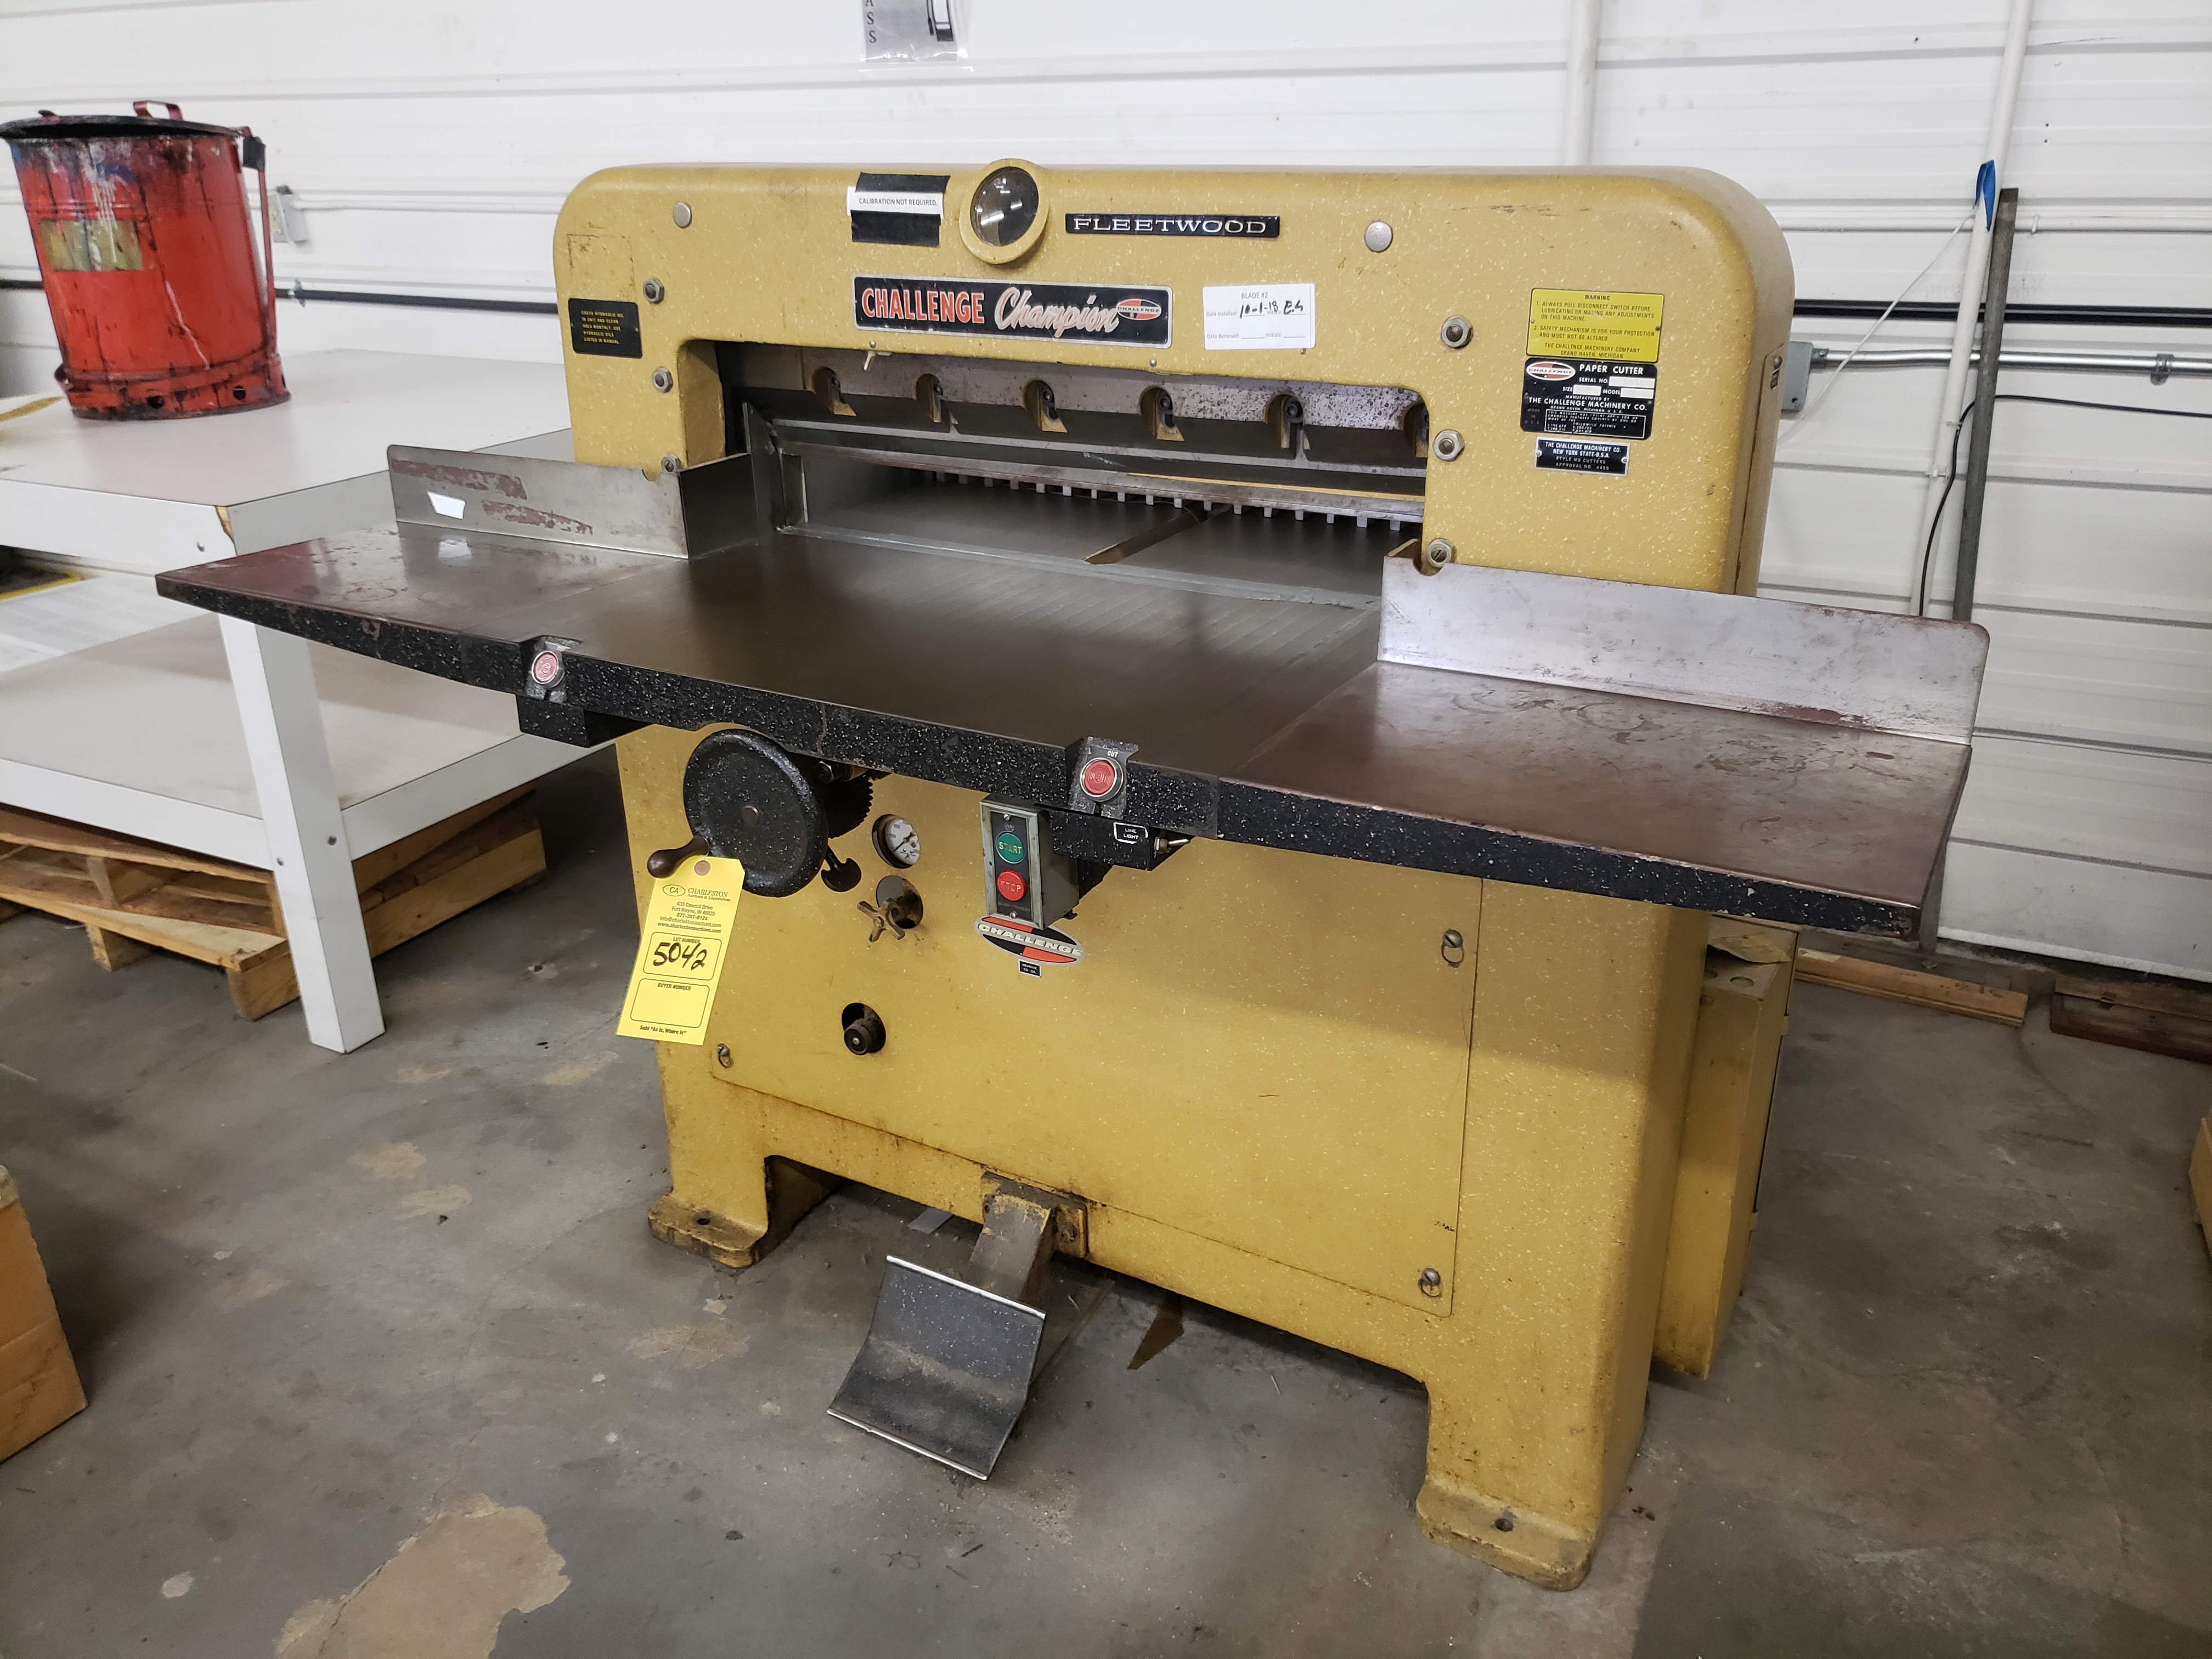 Lot 5042 - CHALLENGE CHAMPION FLEETWOOD PAPER CUTTER MODEL-MB S#5534 SIZE:305 (LOCATED AT: 16335 LIMA ROAD